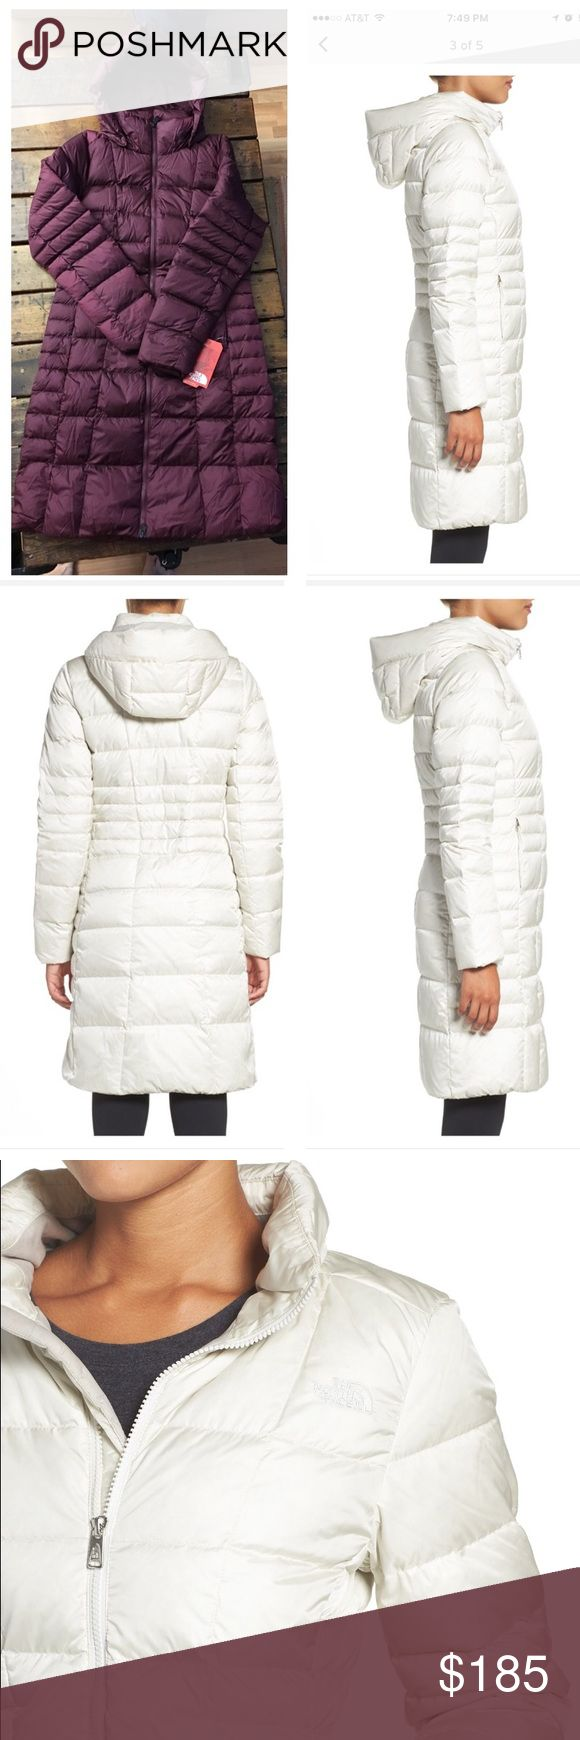 North Face Metropolis 2 Down Parka NWT. North Face Metropolis 2 Down Parka, water resistant. Color, Deep Garnet Red. Currently at Nordstrom for $289.❗️PRICE FIRM, no bundle discount❗️ North Face Jackets & Coats